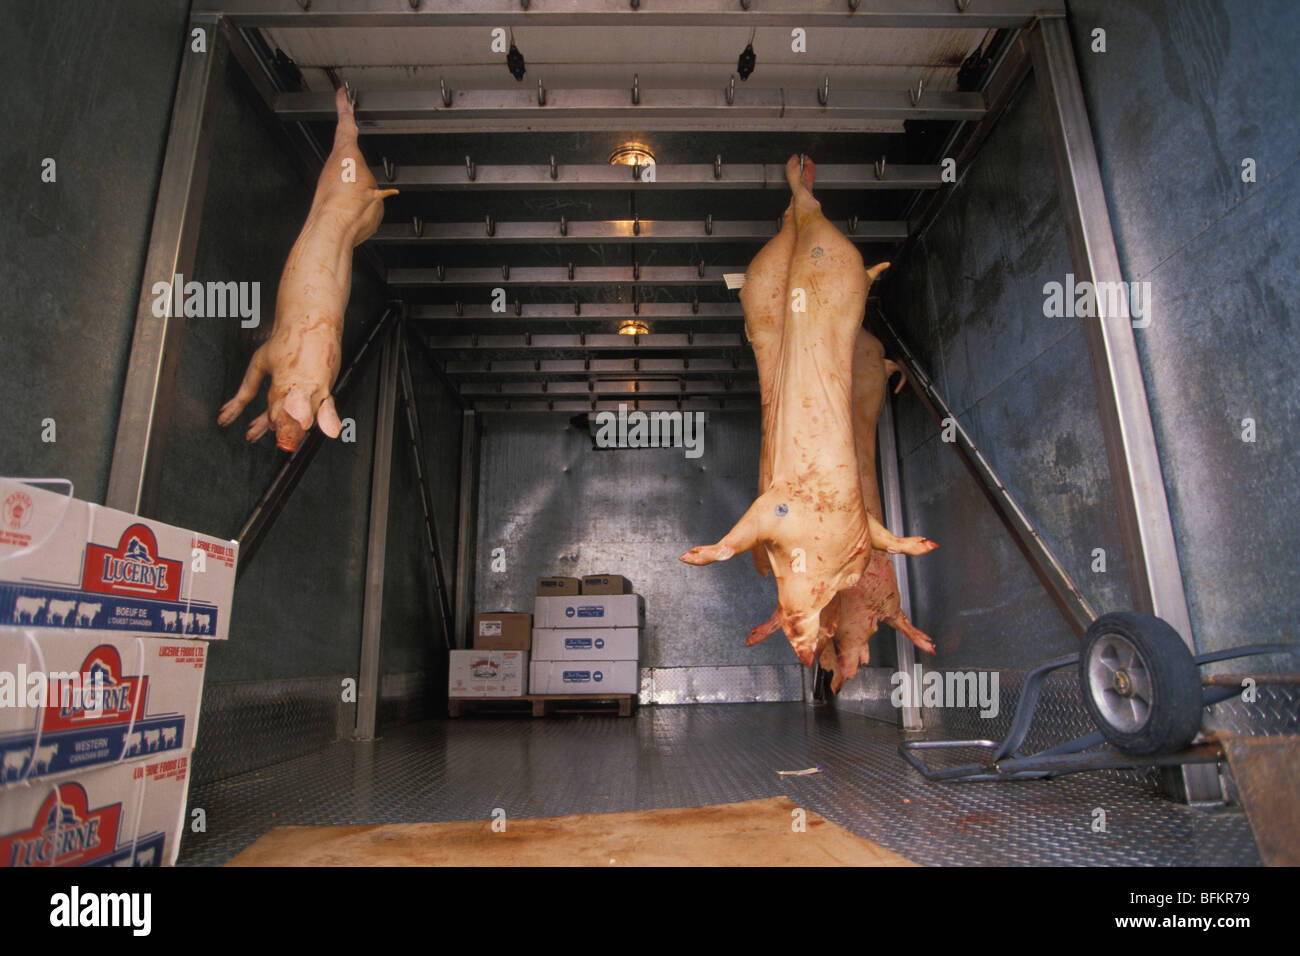 Swine Carcasses Hang From Hooks Inside Of Delivery Truck Vancouver British Columbia Canada